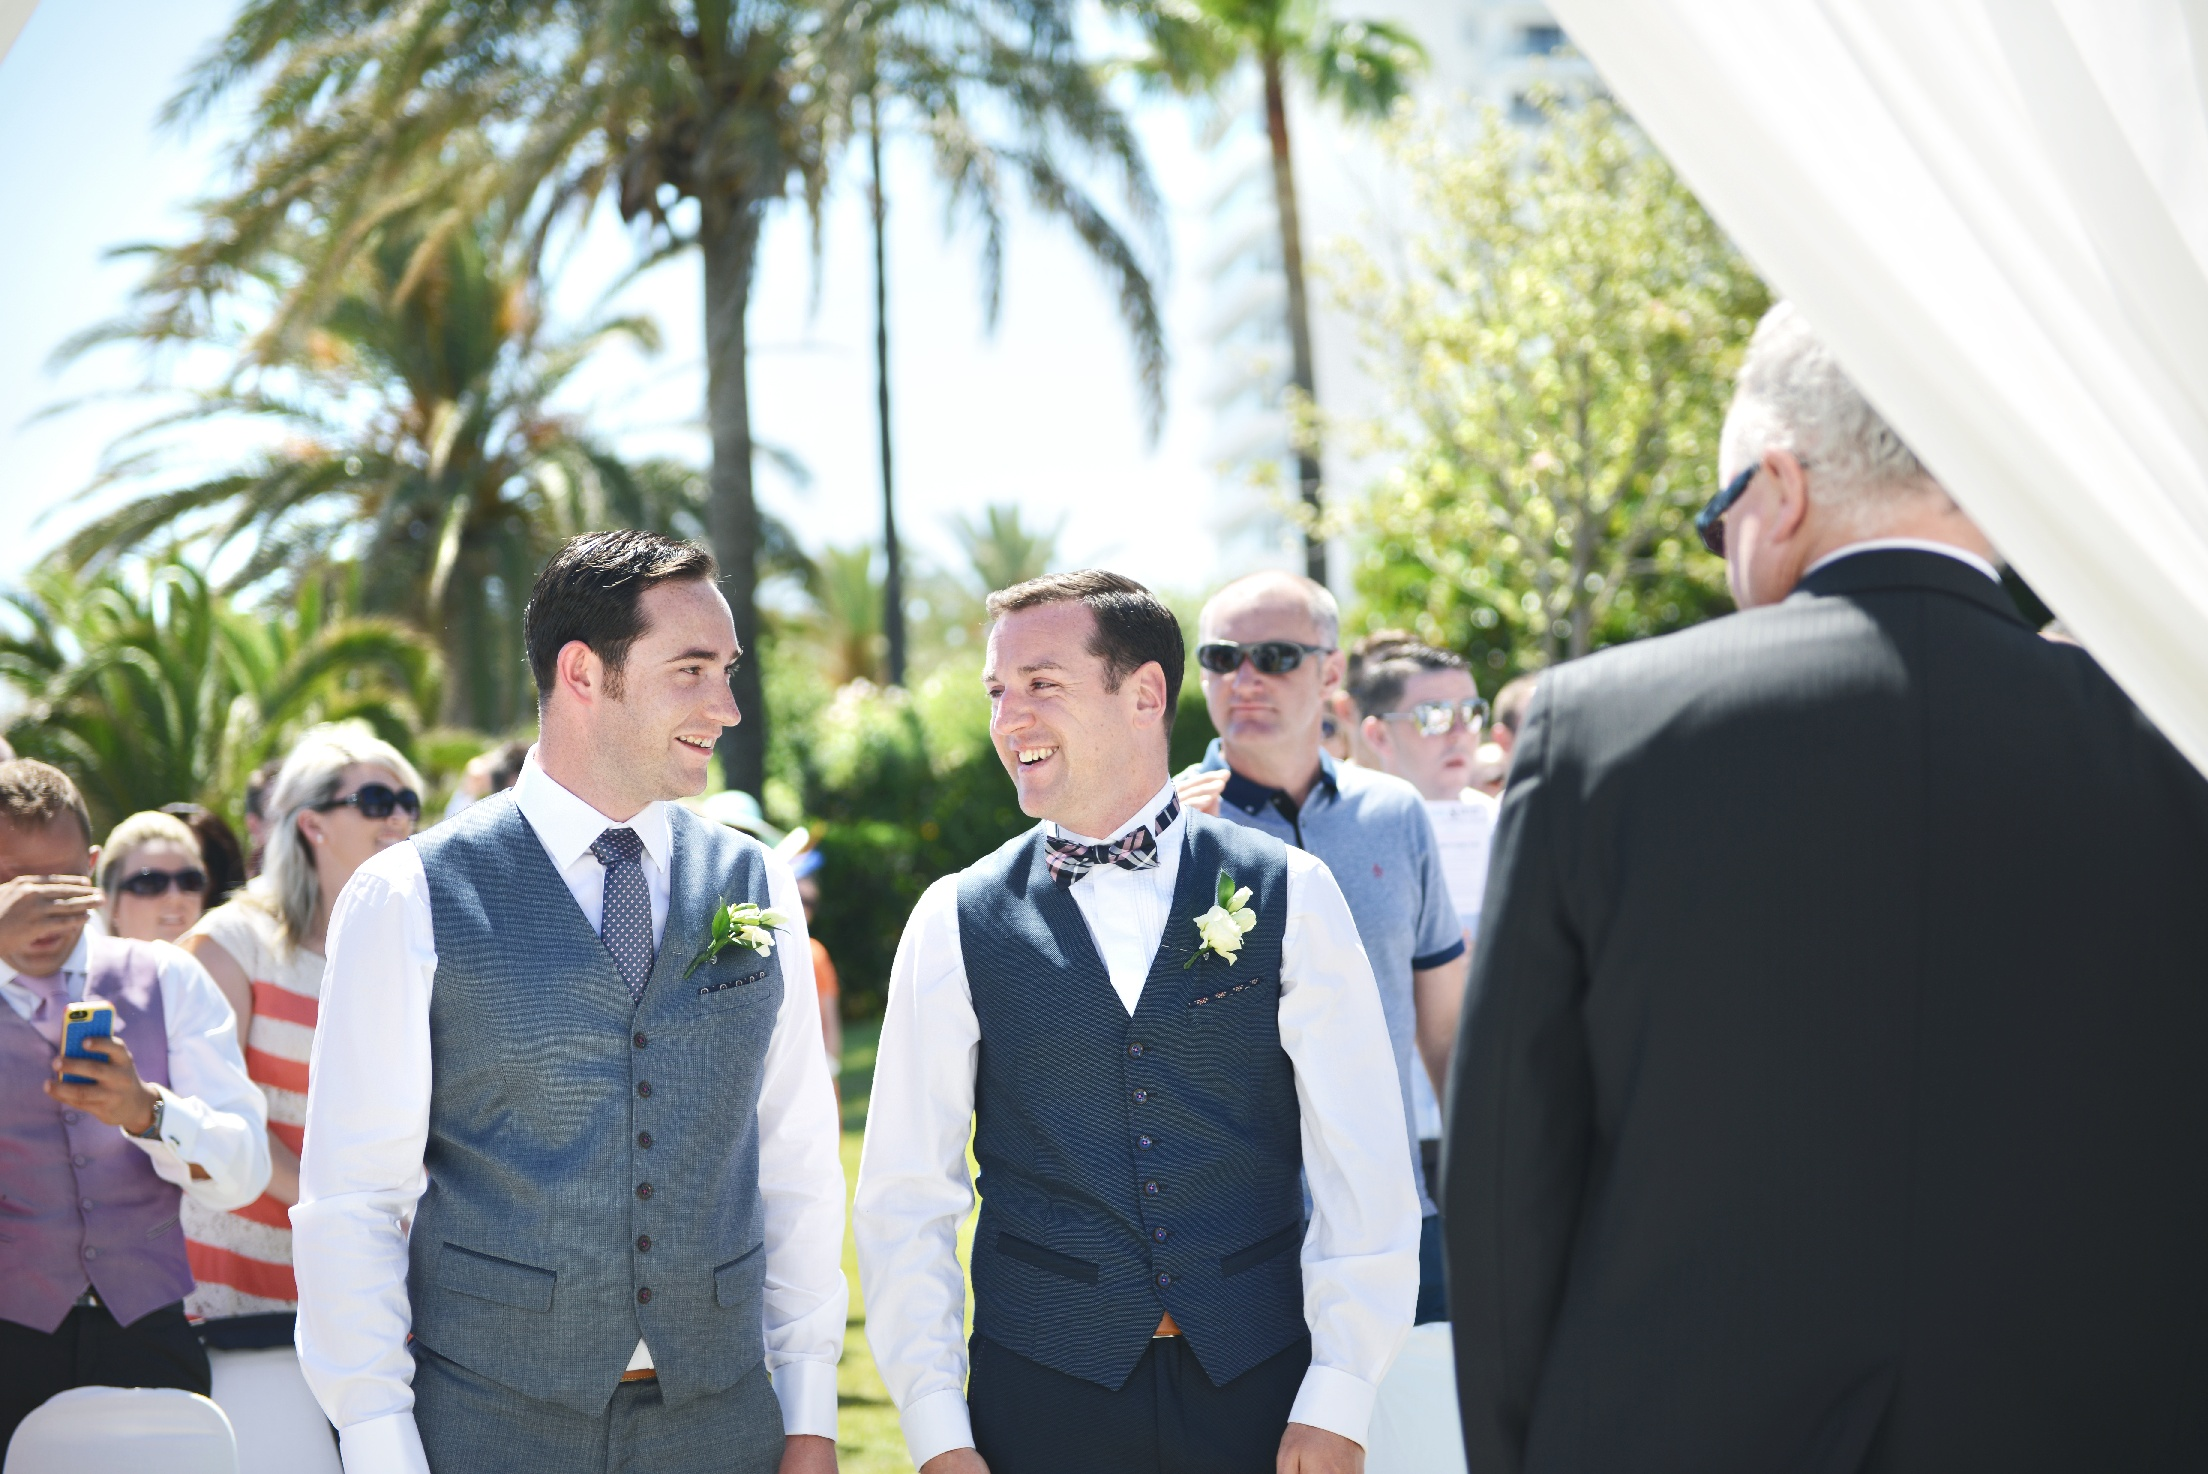 fotografos boda gays - wedding photographers (6)